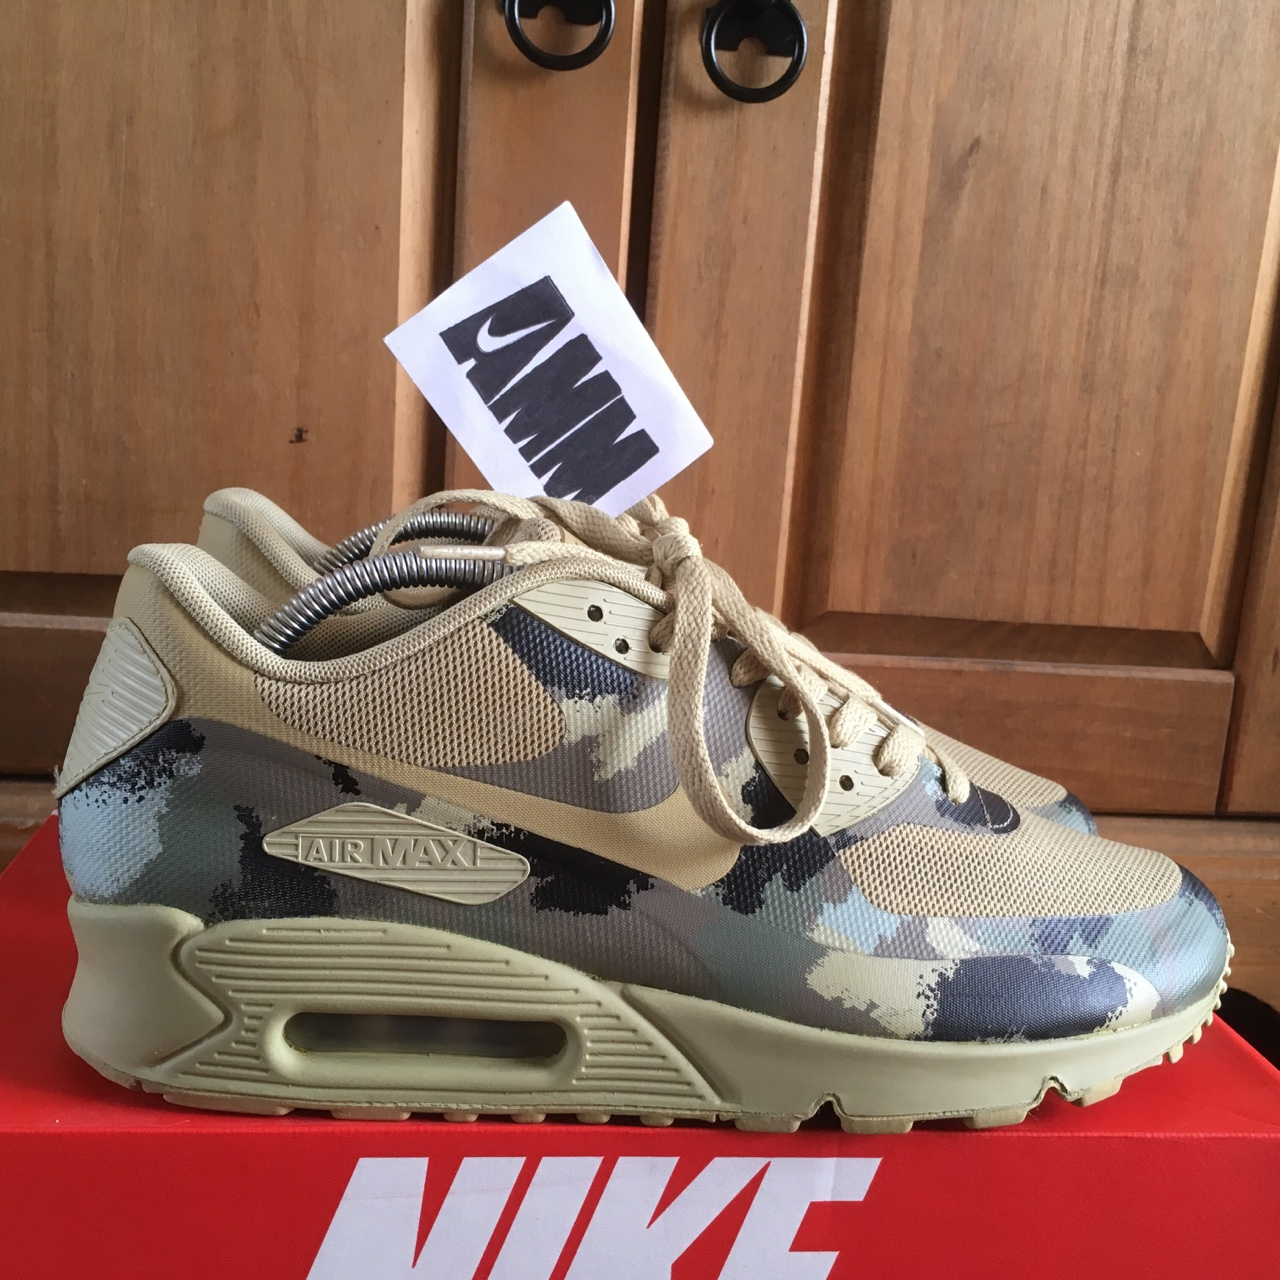 Nike Air Max 90 Italy Camo Pack